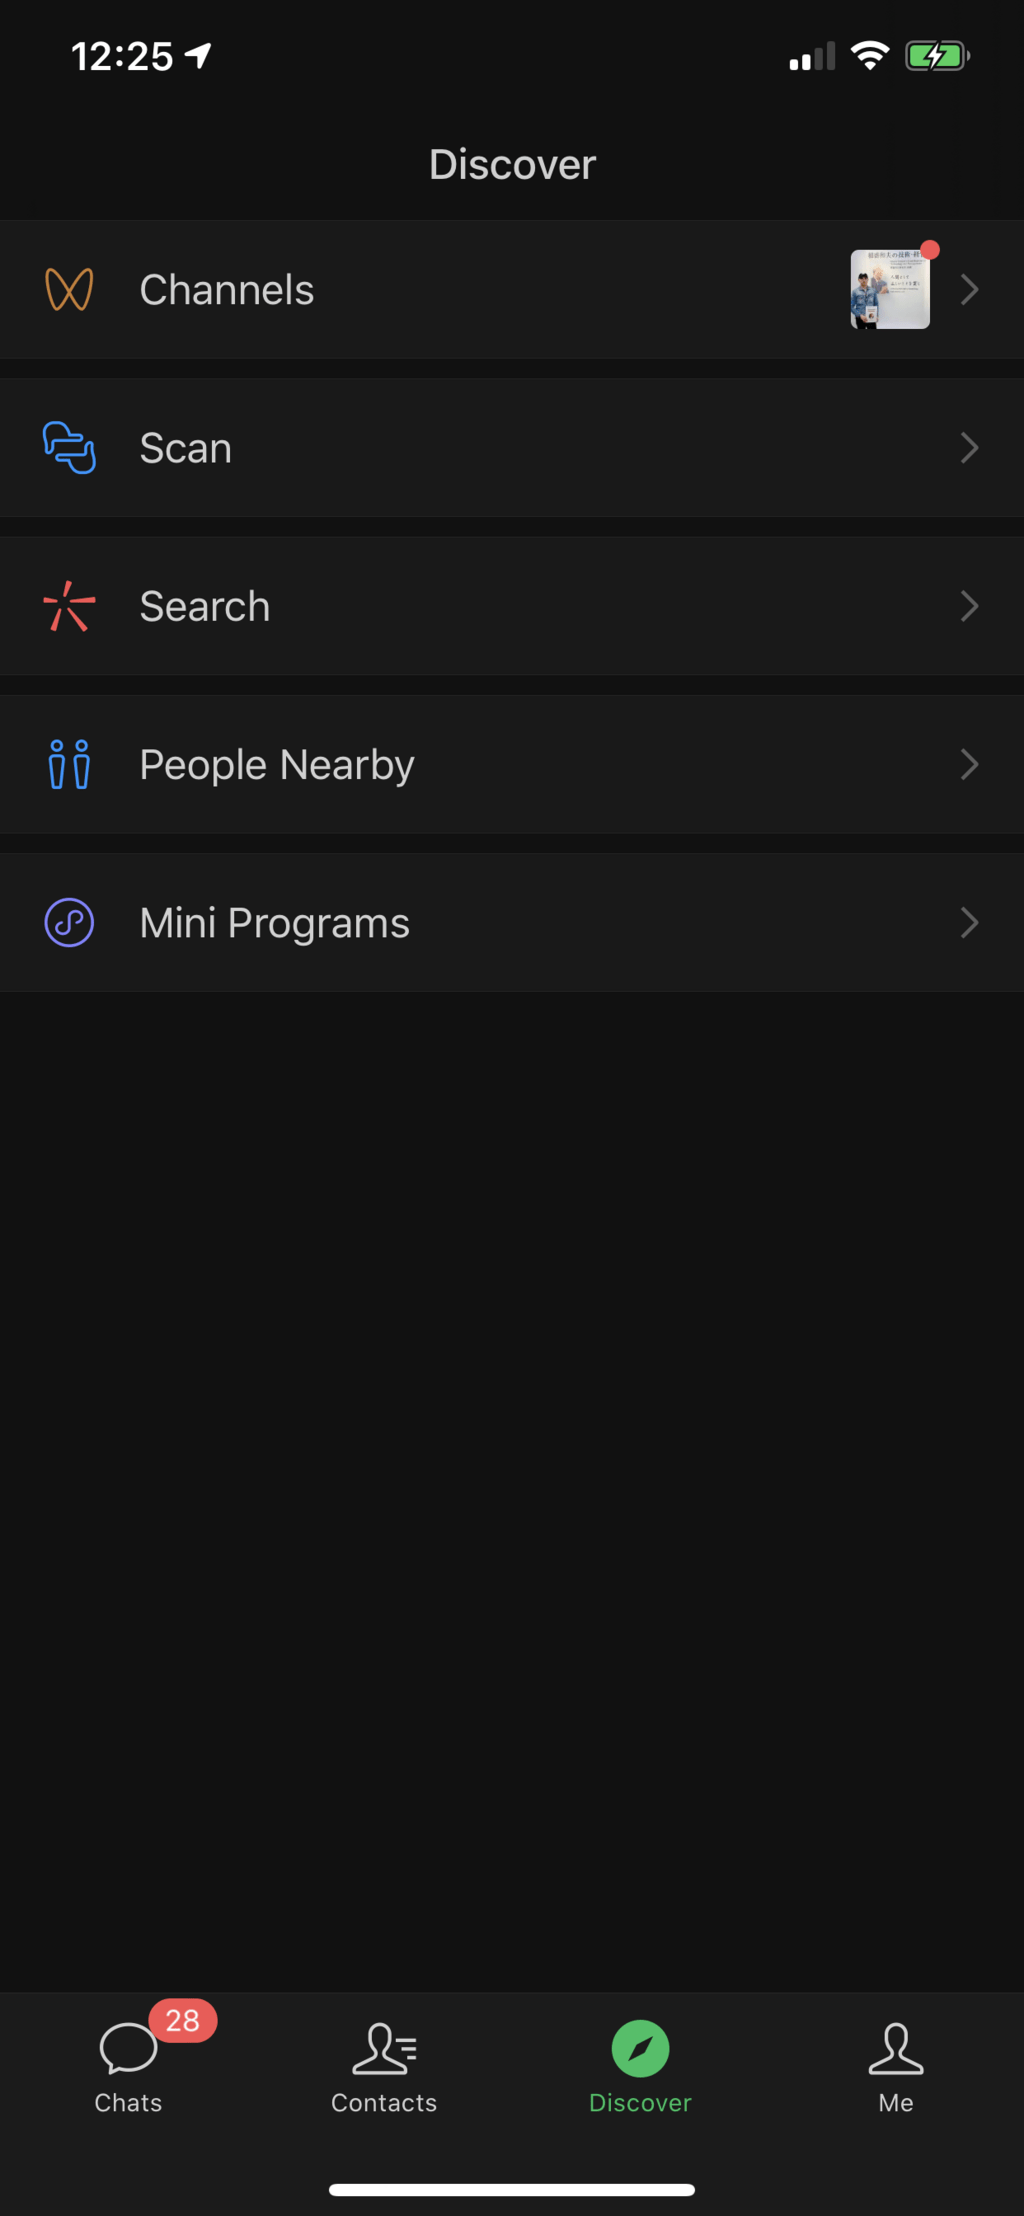 Tap the WeChat Discover Tab and then tap the search option.